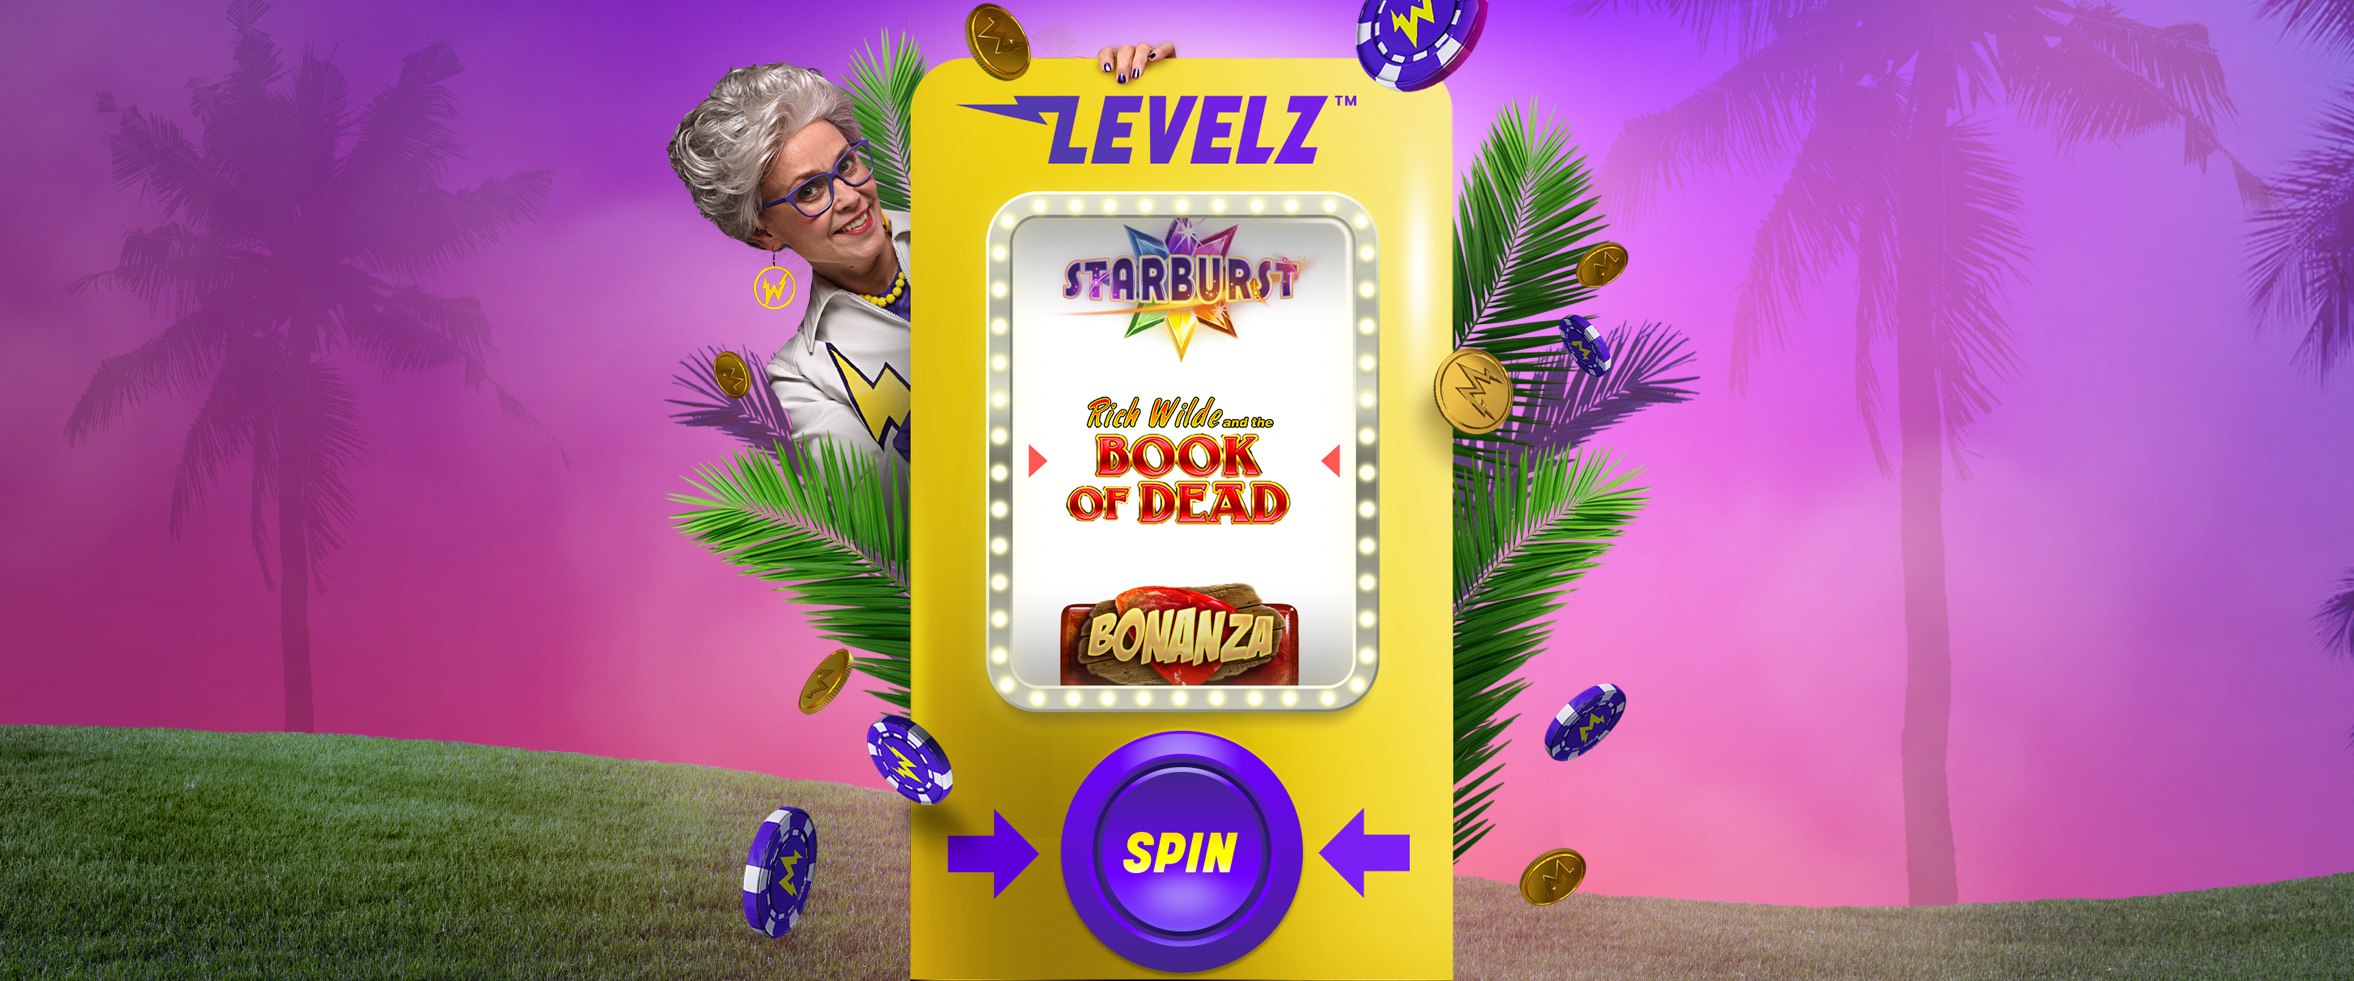 Wildz gives out 1 million free spins